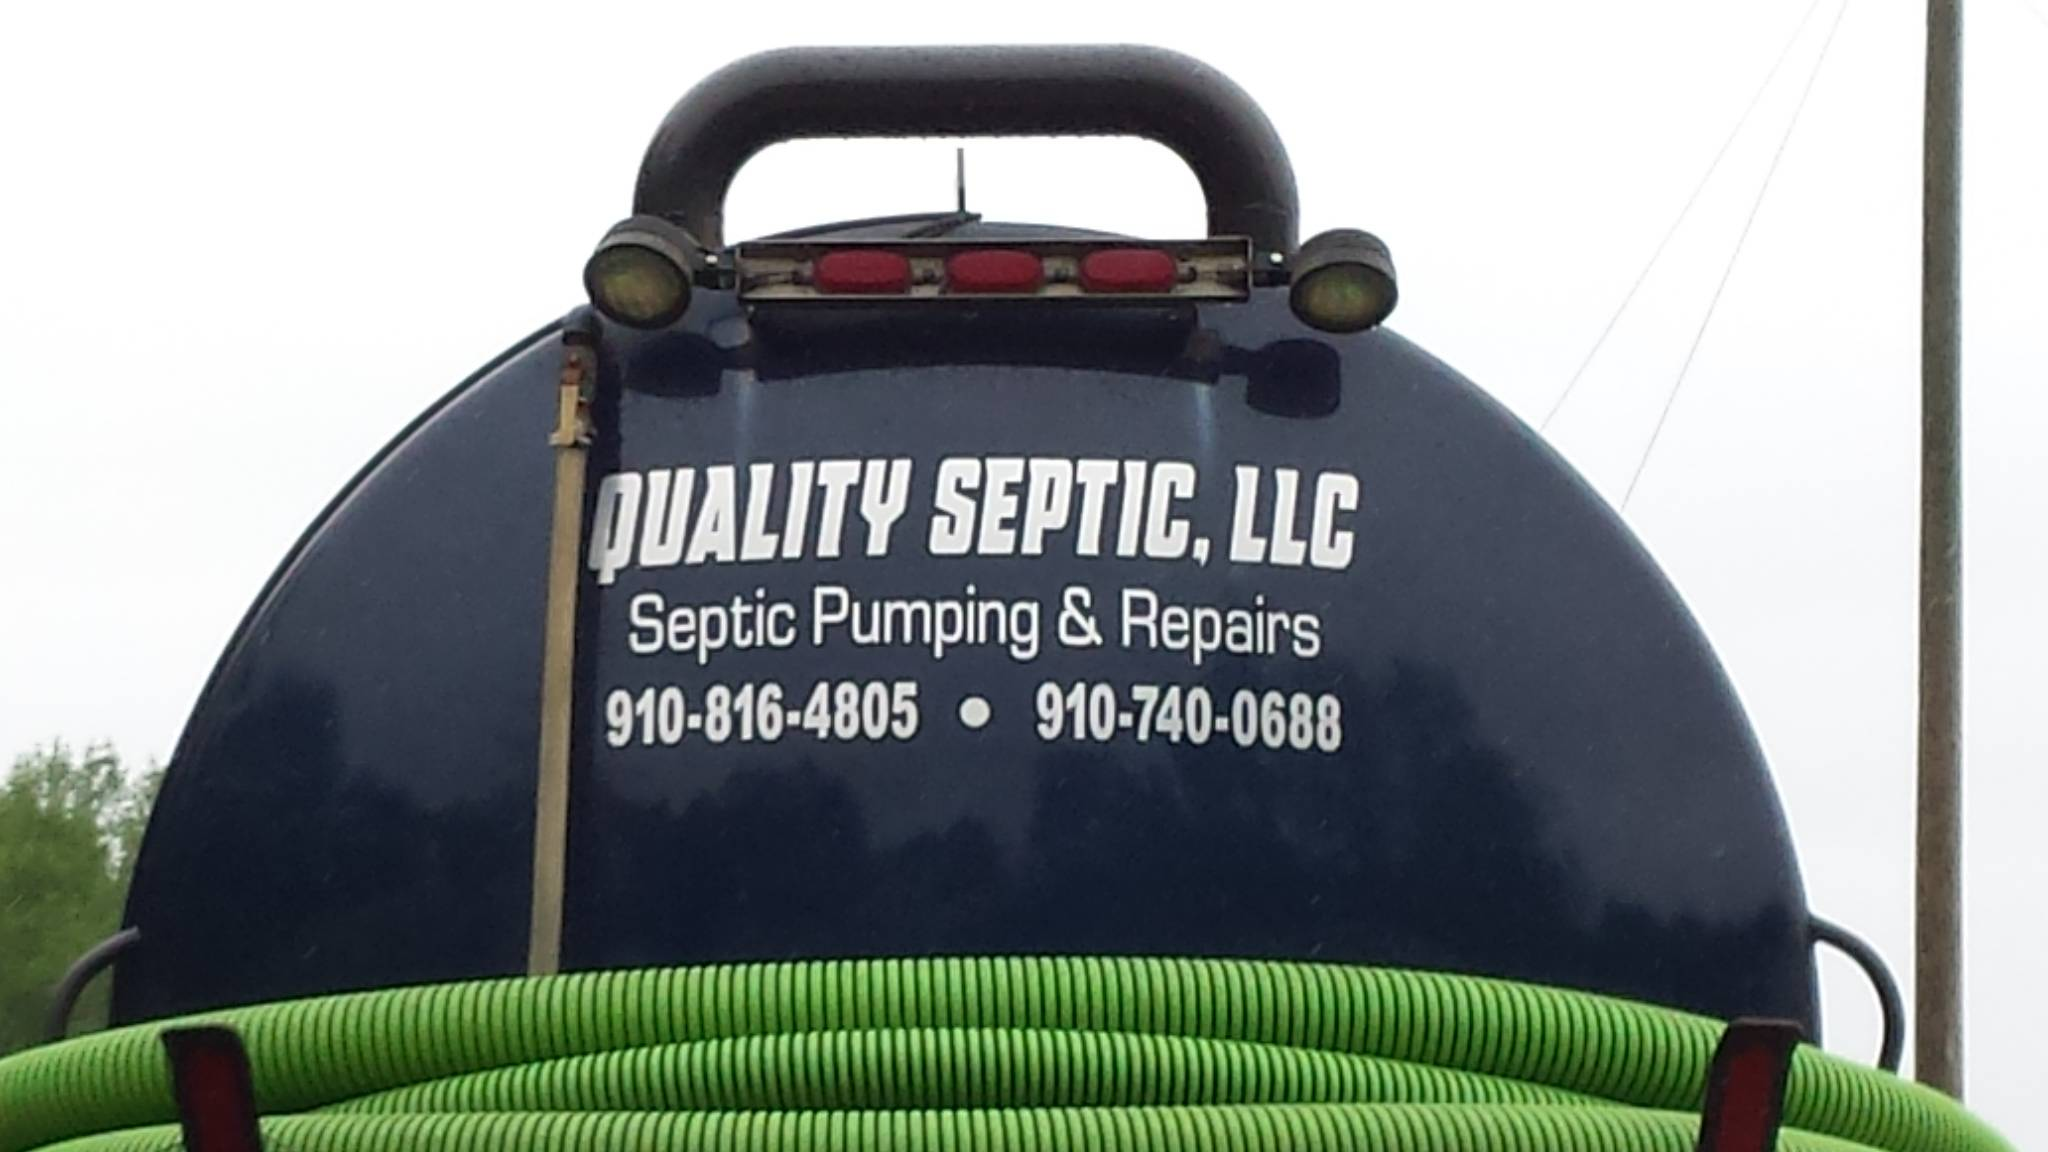 Quality Septic Llc